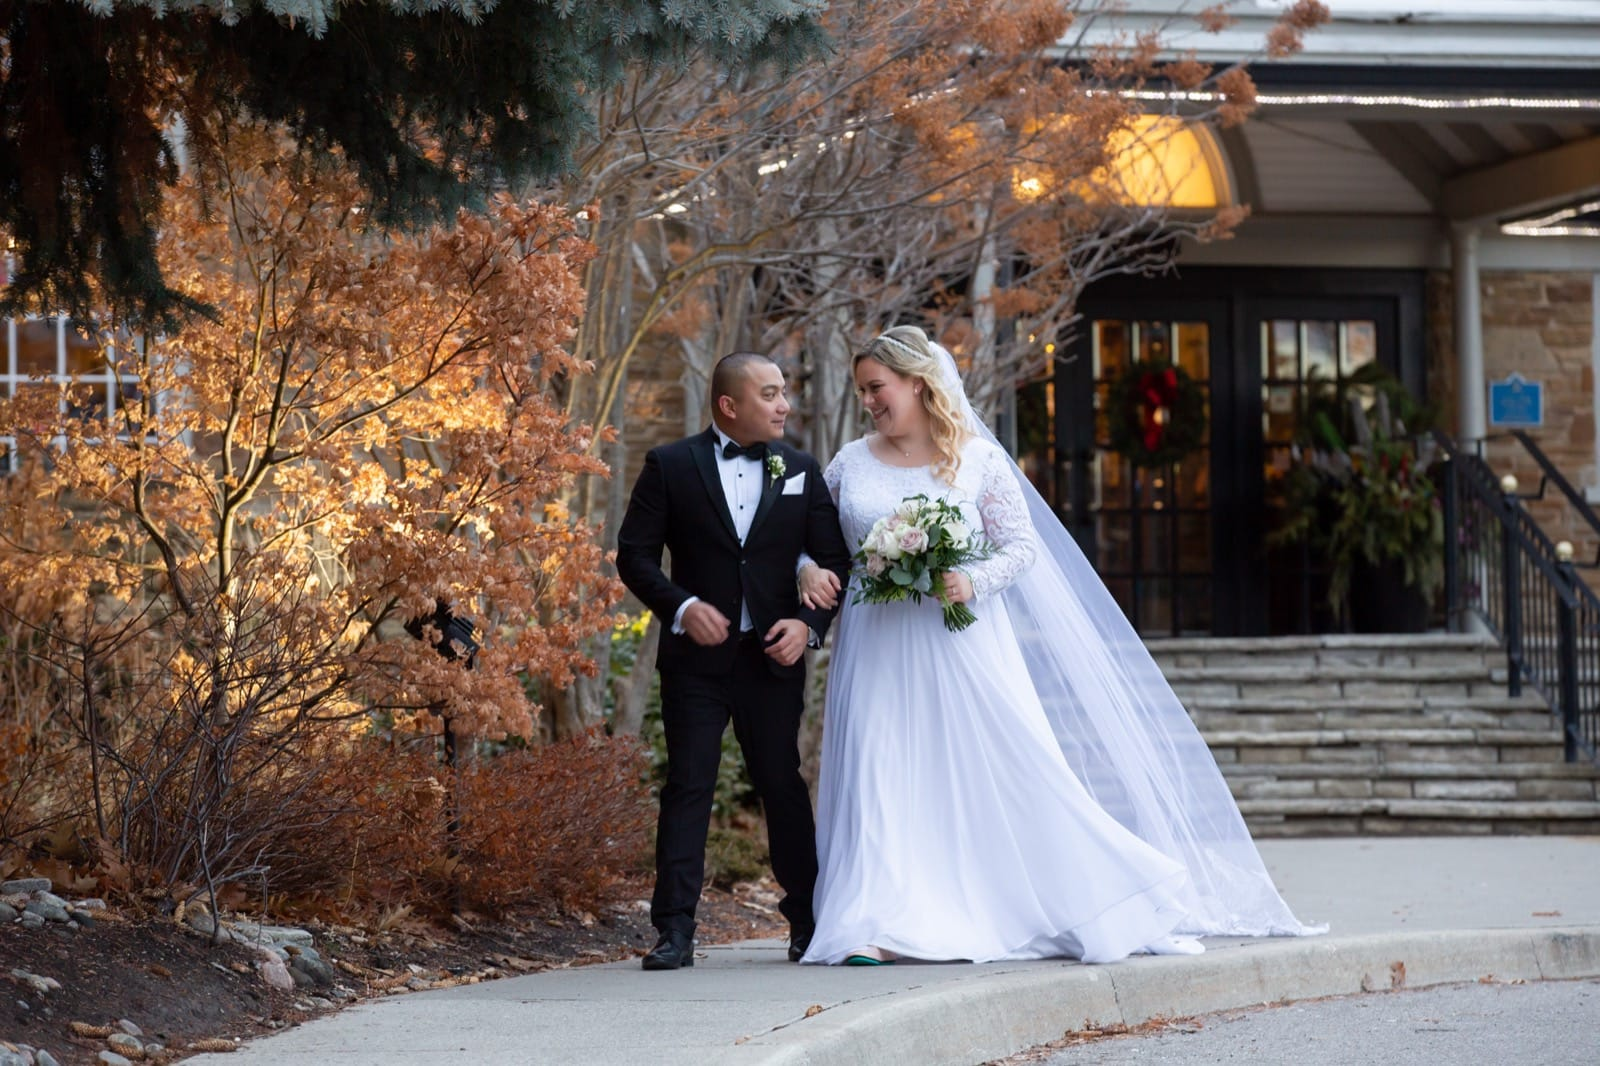 Wedding Pictures at The Glenerin Inn & Spa